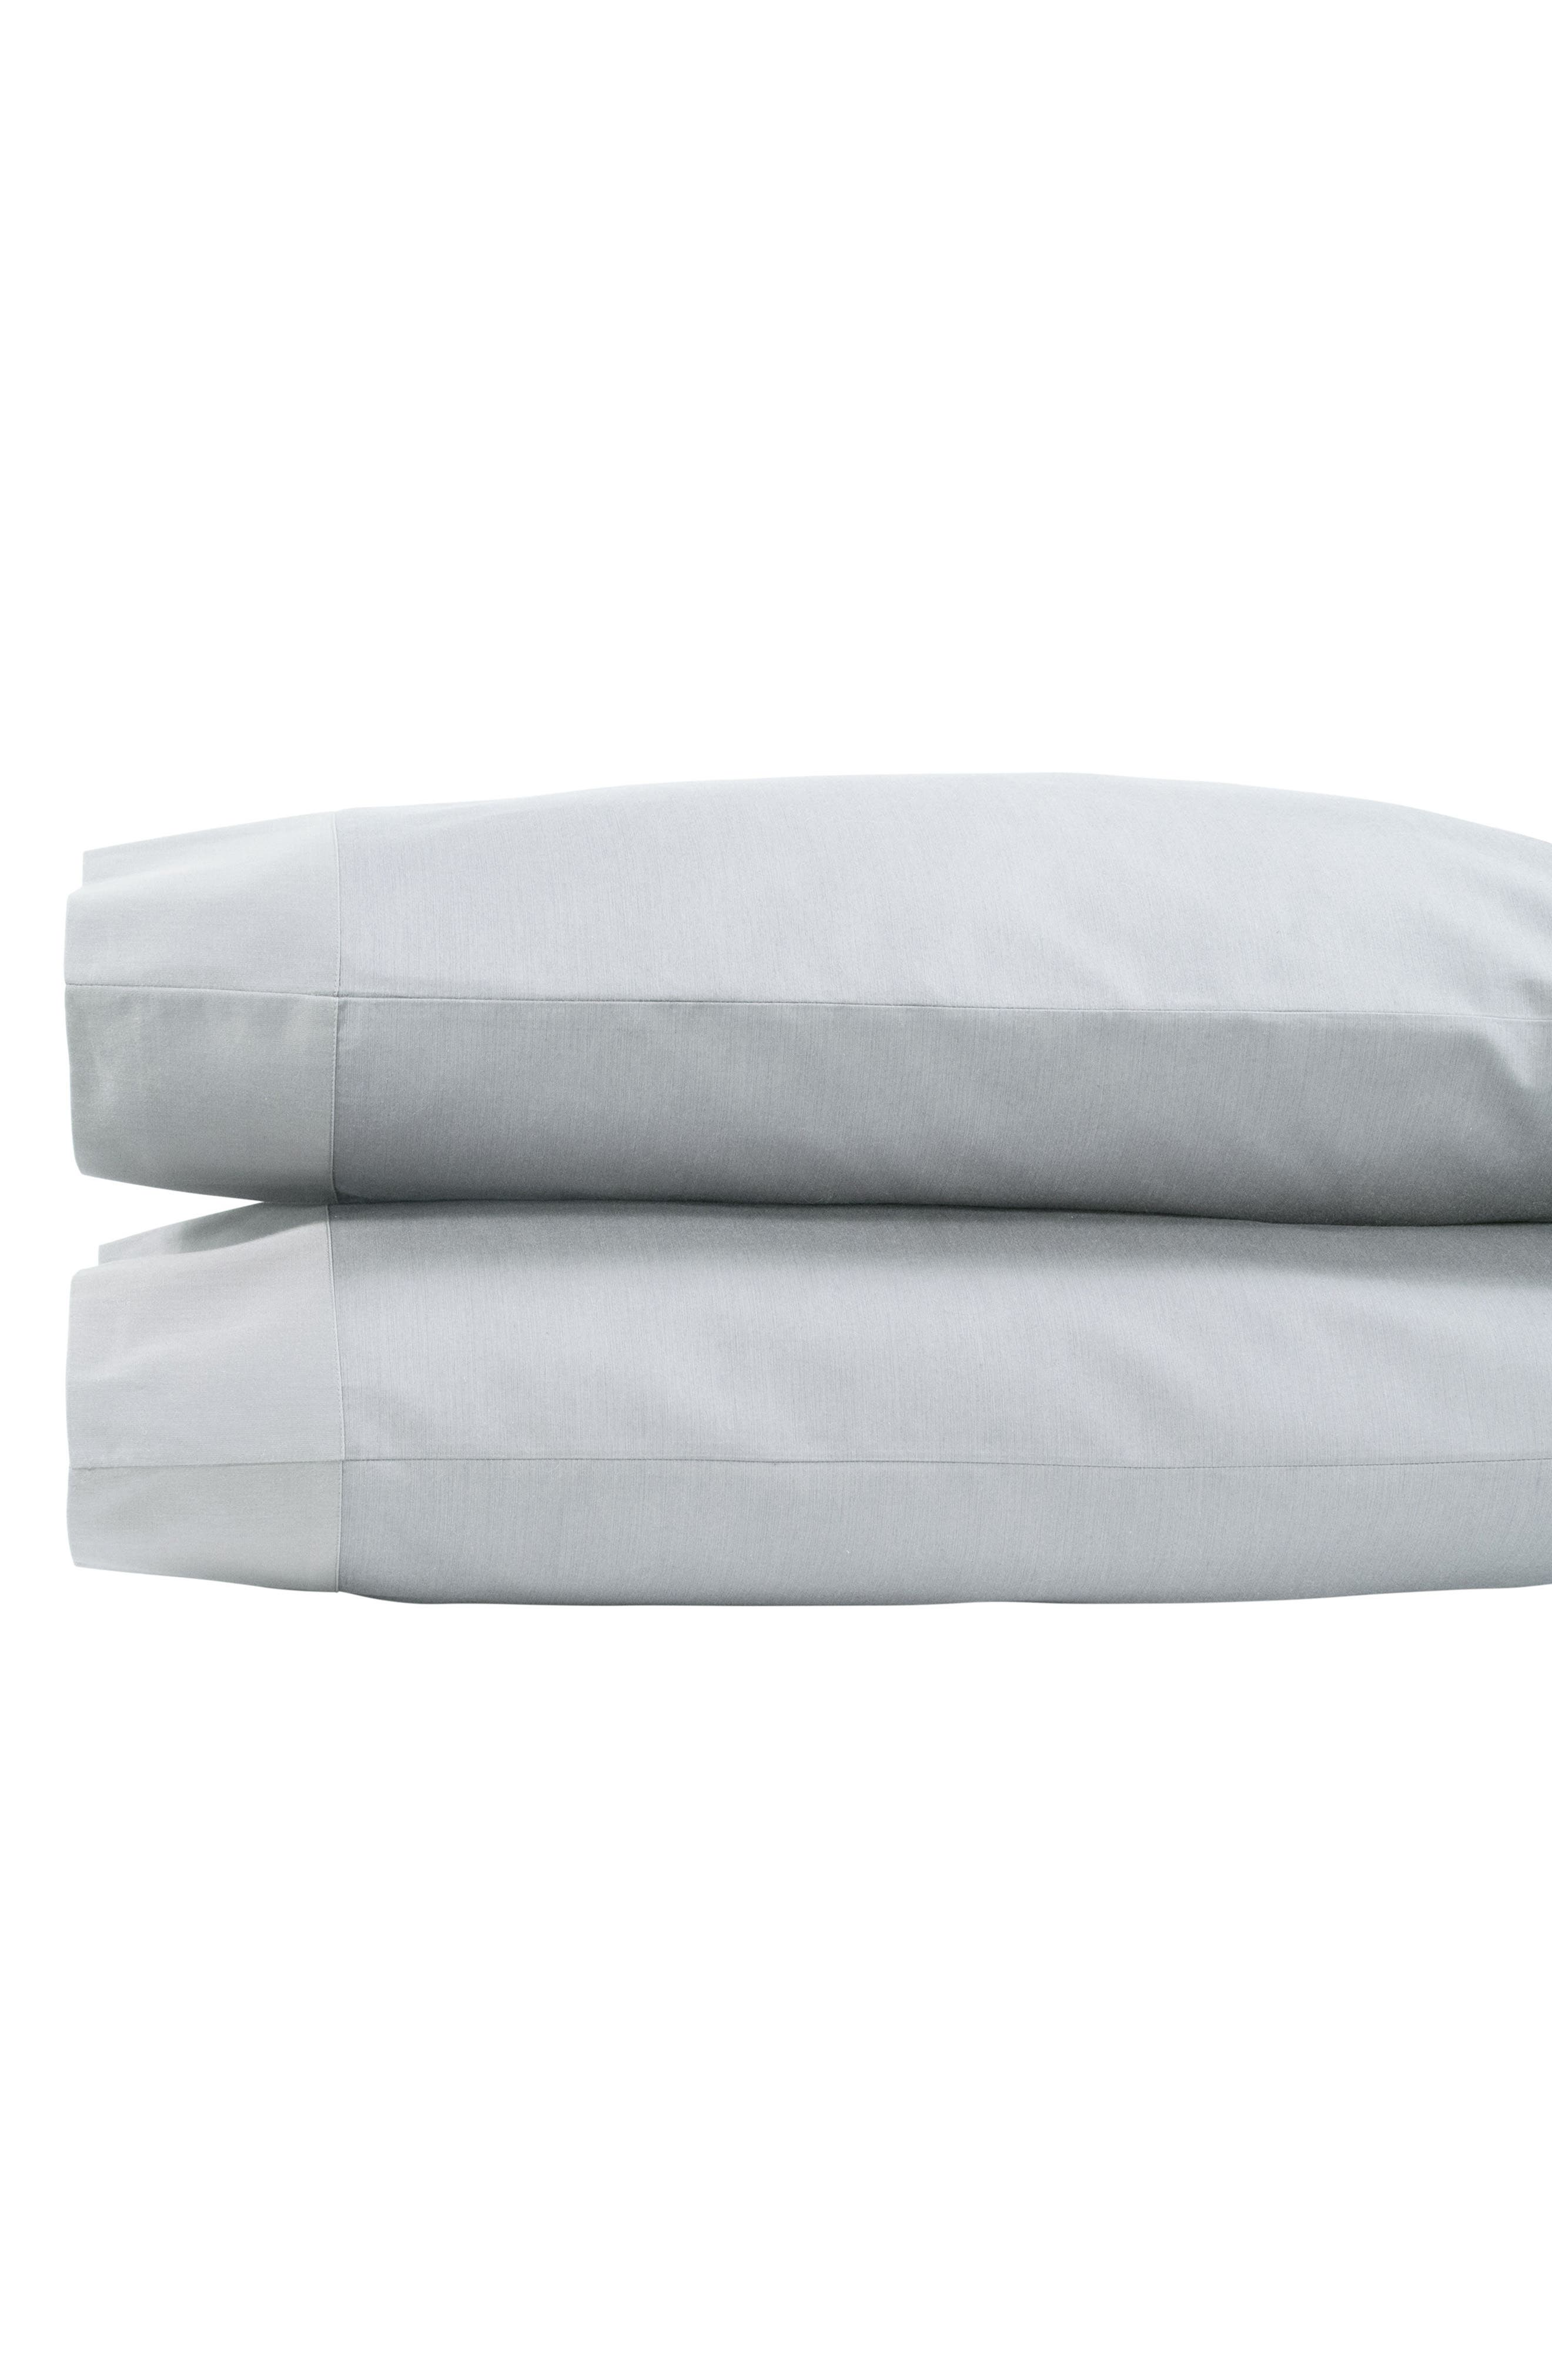 Striated Band 400 Thread Count Pillowcases,                         Main,                         color, GRAY